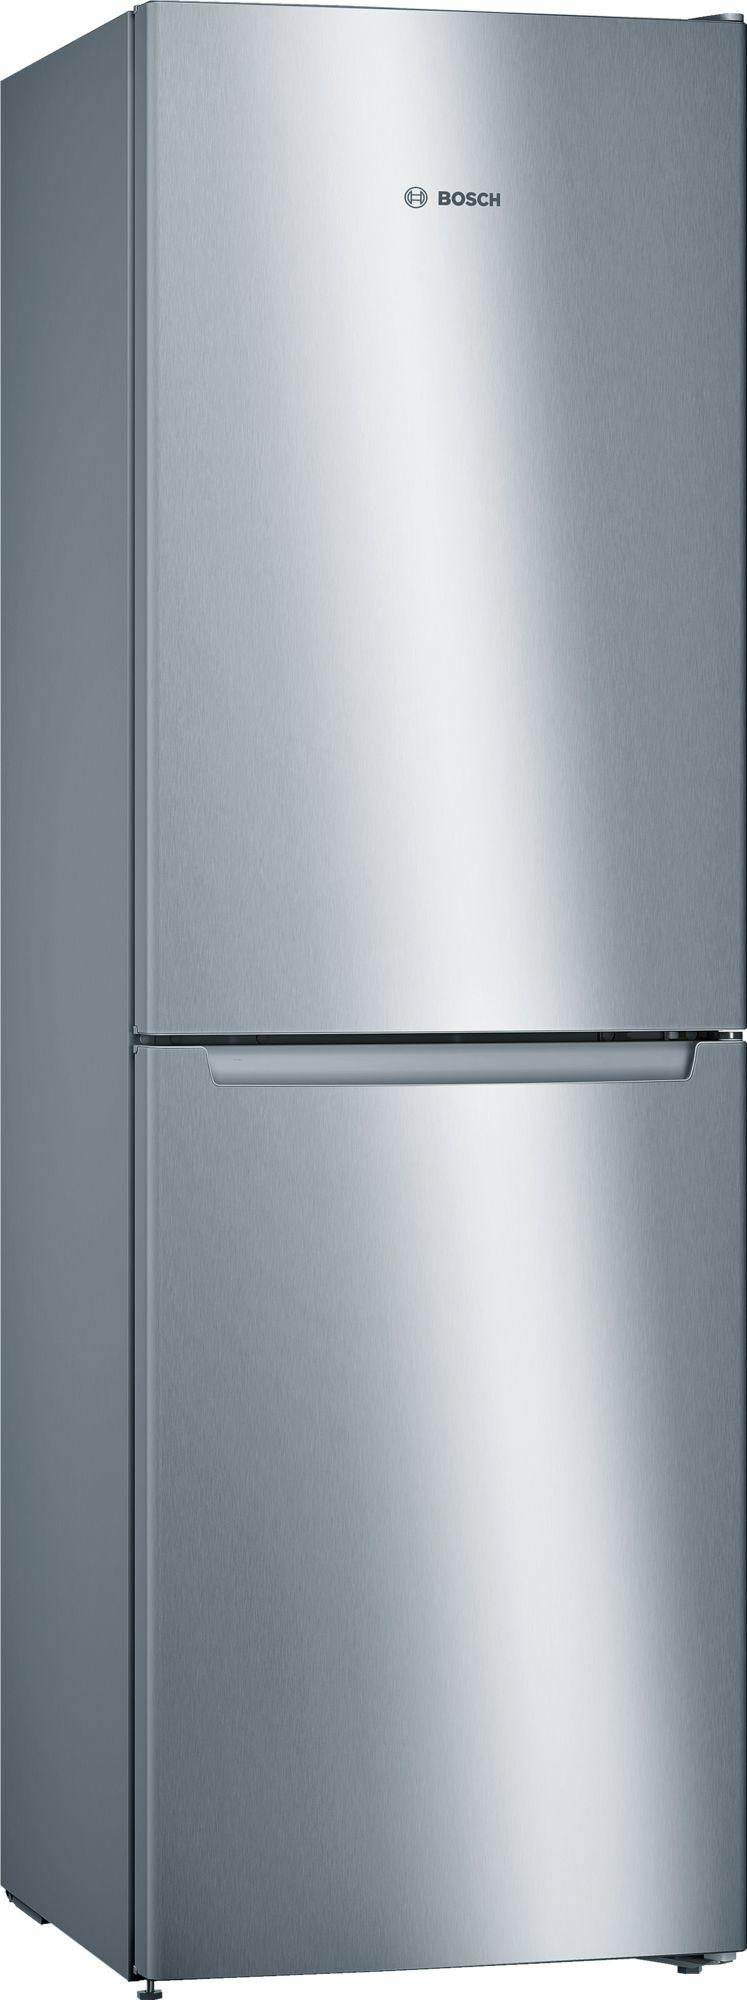 Click to view product details and reviews for Serie 2 Kgn34nl3ag 297 Litre Frost Free Fridge Freezer.